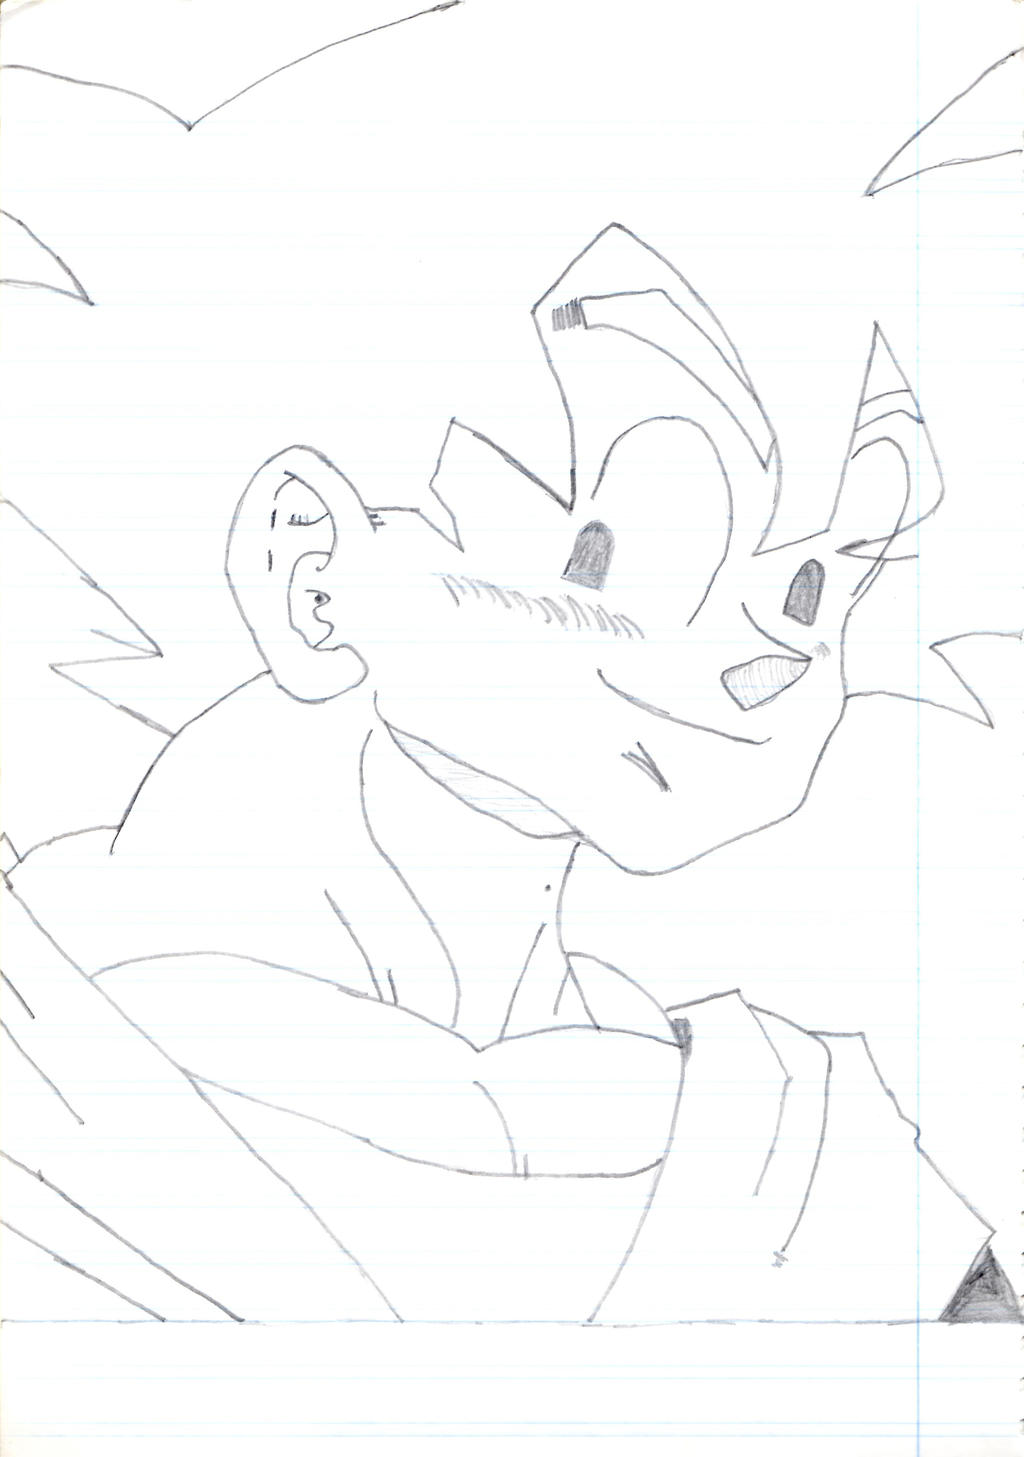 Son Goku sketch portrait 1996